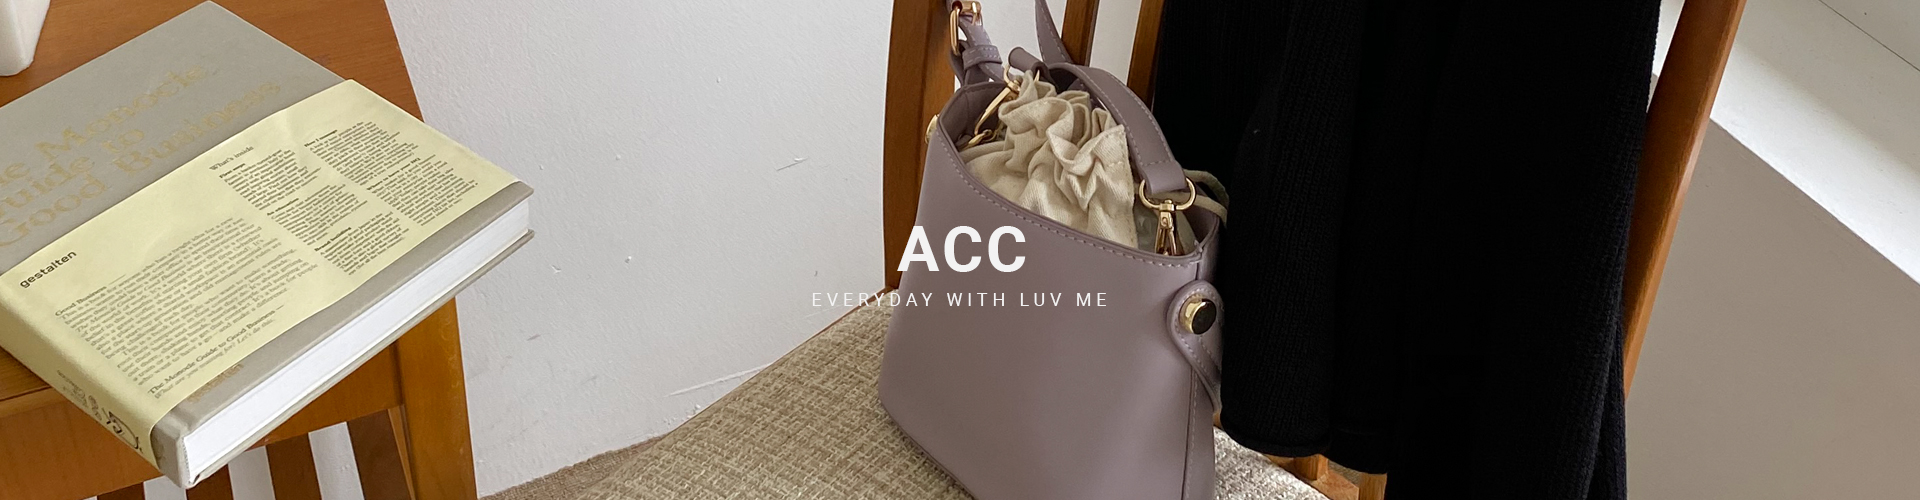 acc_s